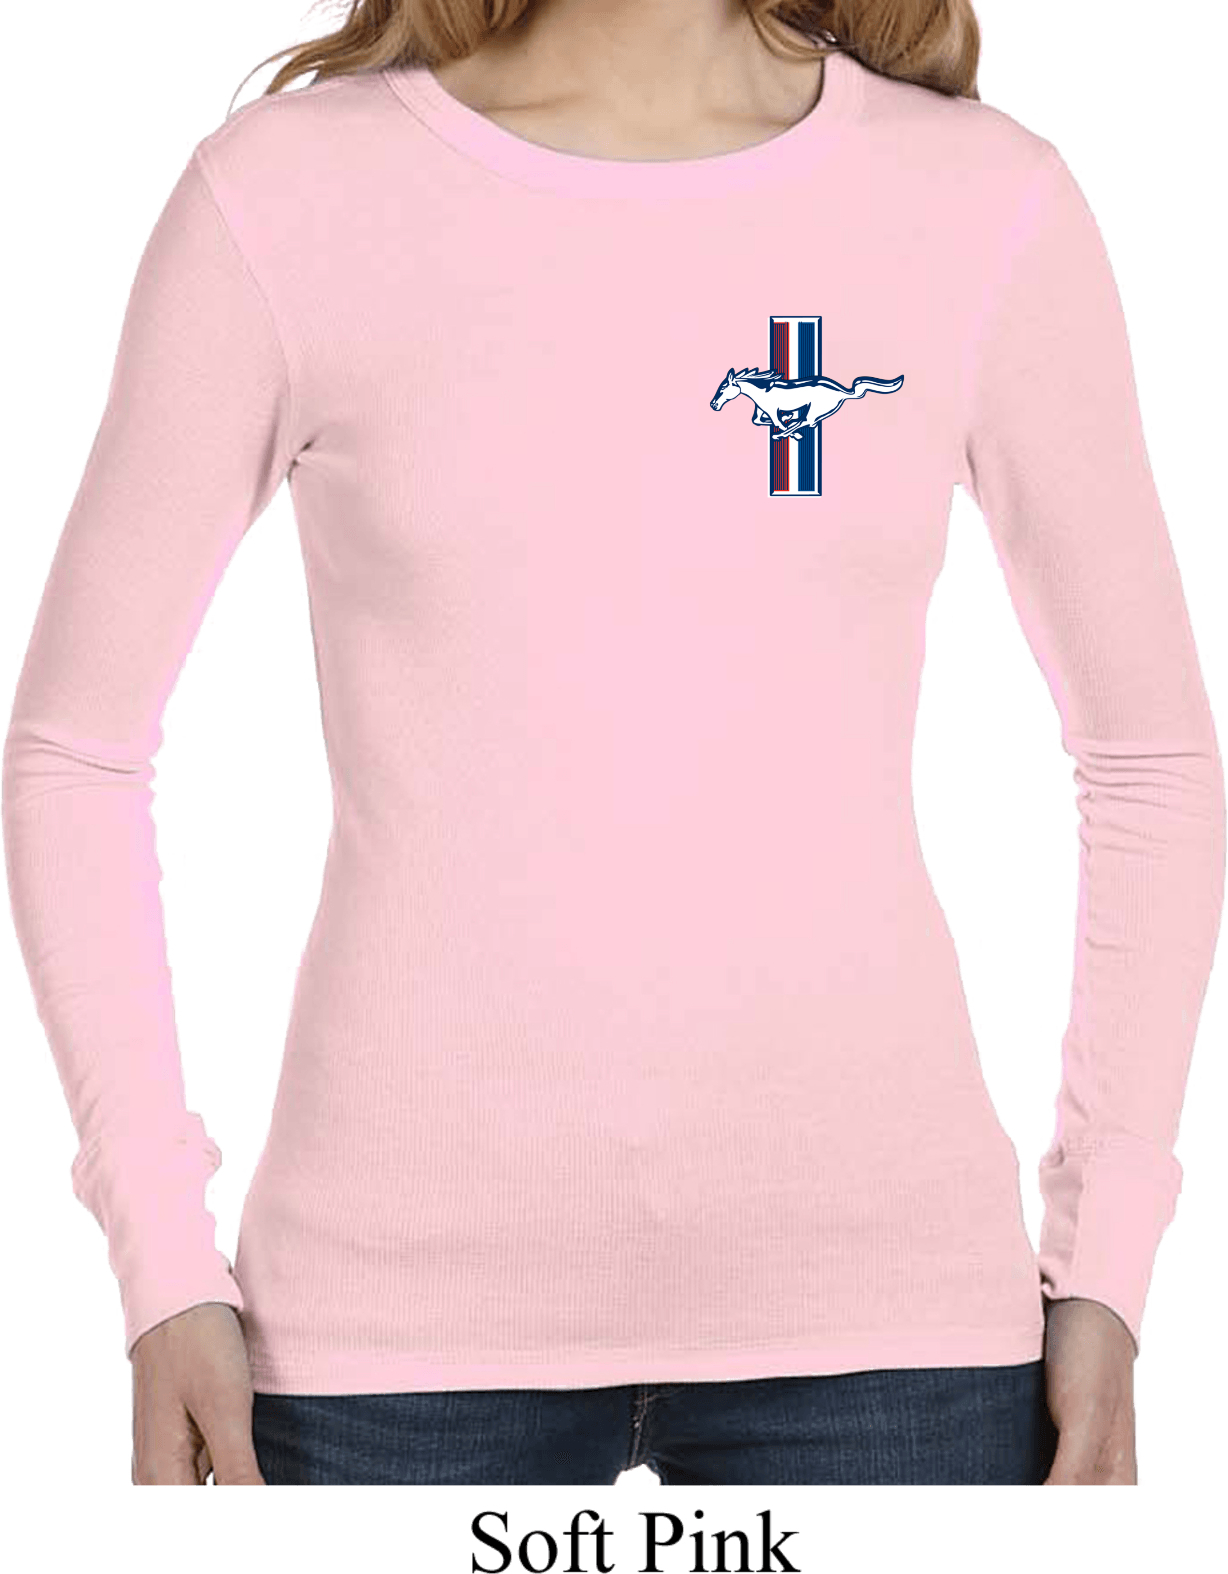 Ladies shirt the legend lives crest long sleeve thermal Thermal t shirt long sleeve